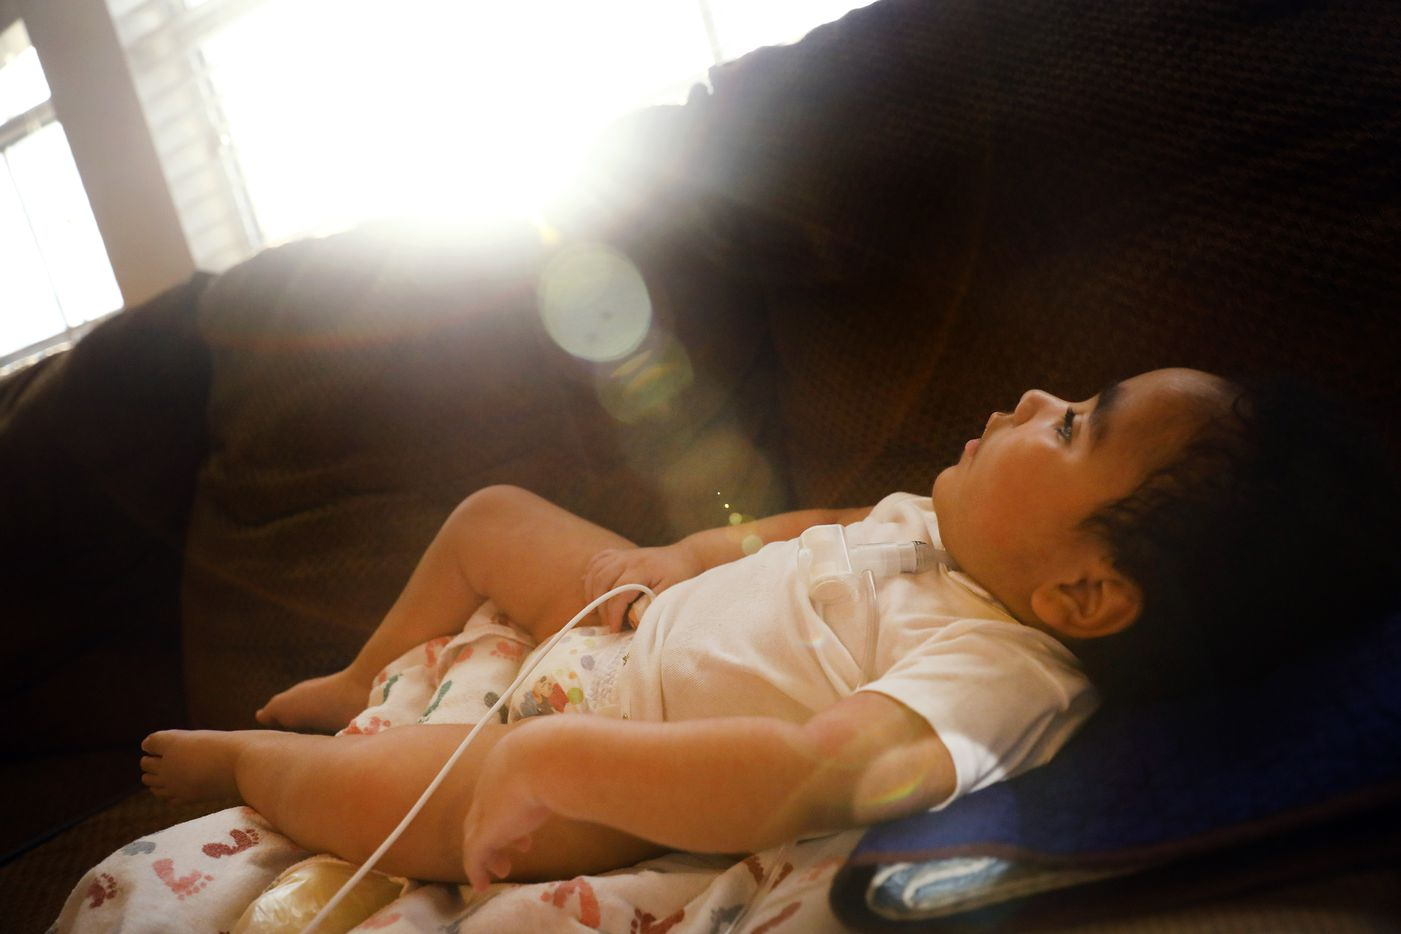 Sunlight streams into the house as D'ashon lies on the couch.